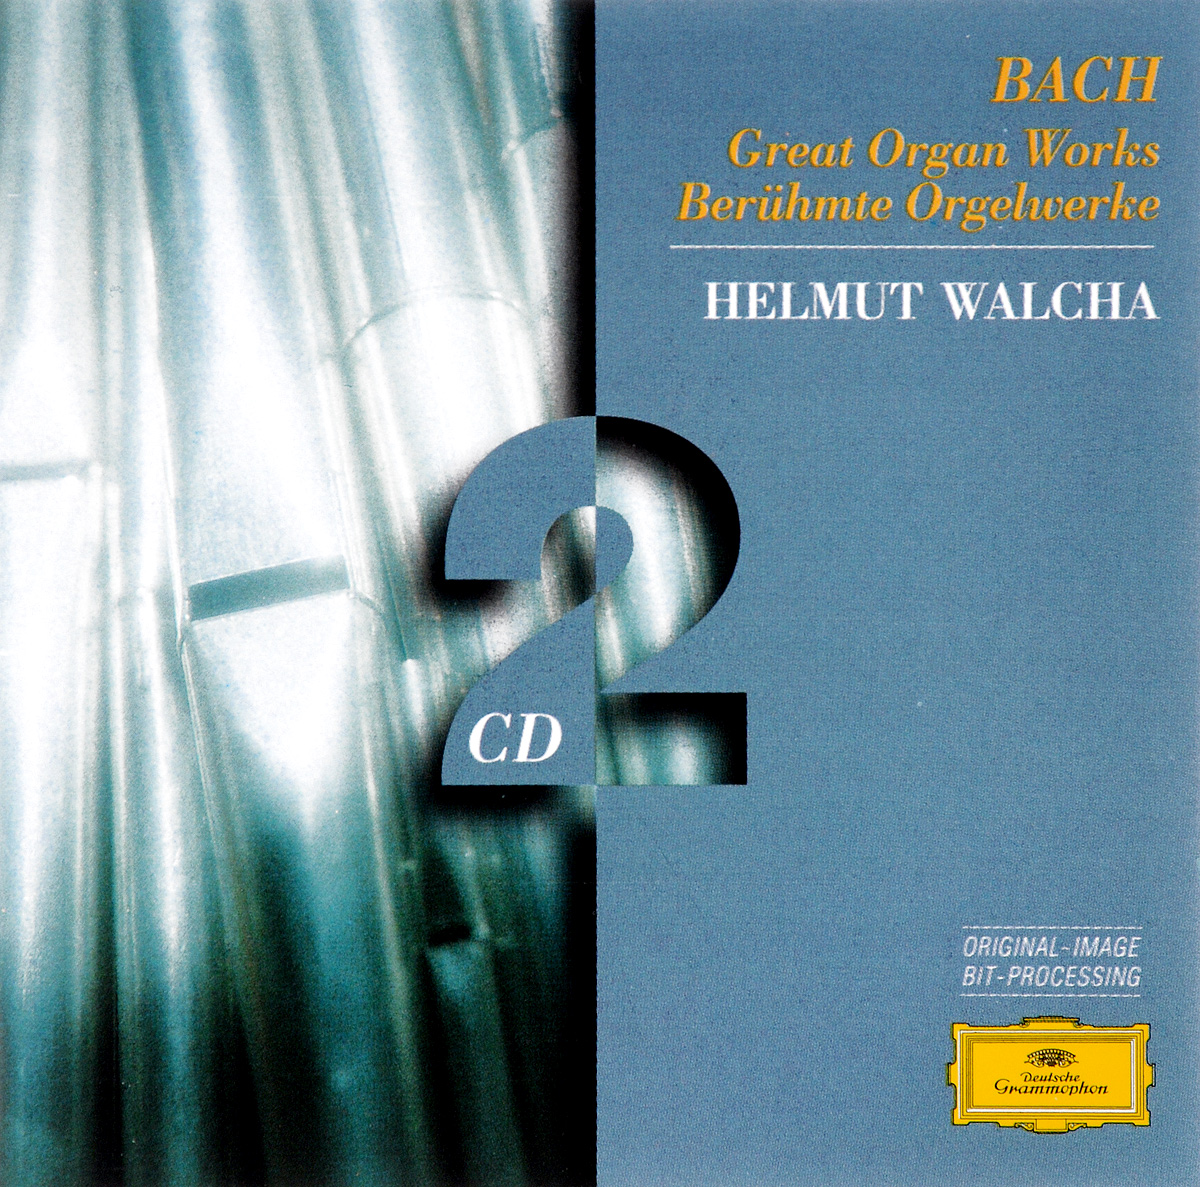 Хельмут Вальха J. S. Bach. Great Organ Works. Helmut Walcha (2 CD) мари клэр элэйн адольф буш sankt nicolai kirke marie claire alain bach complete works for organ 15 cd